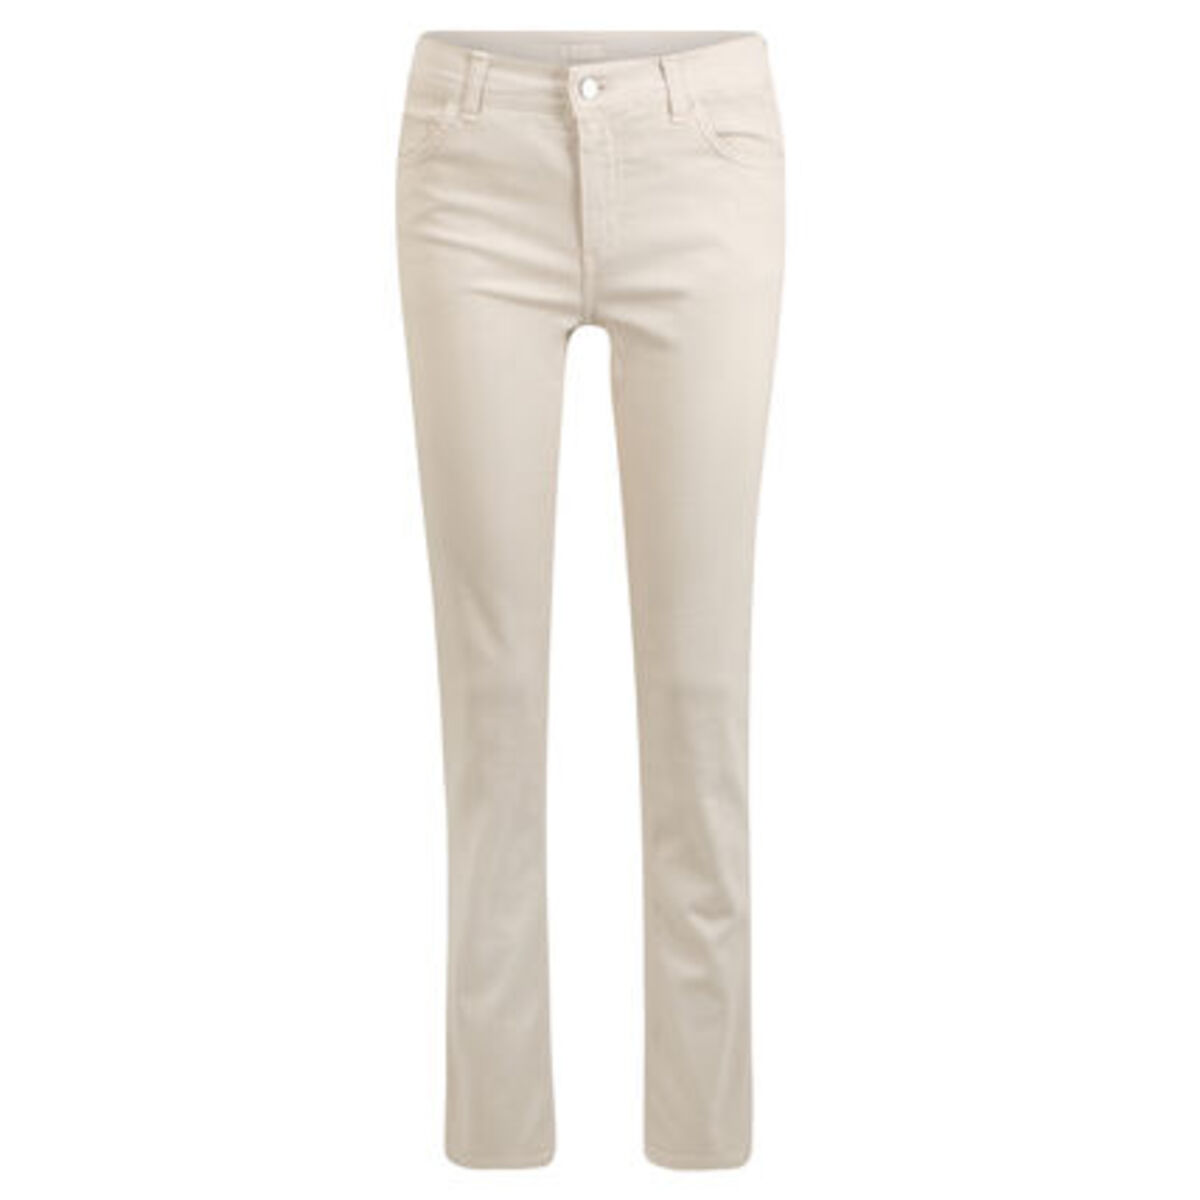 "Bild 1 von Angels Jeans ""Cici"", Regular Fit, Straight Leg, unifarben"